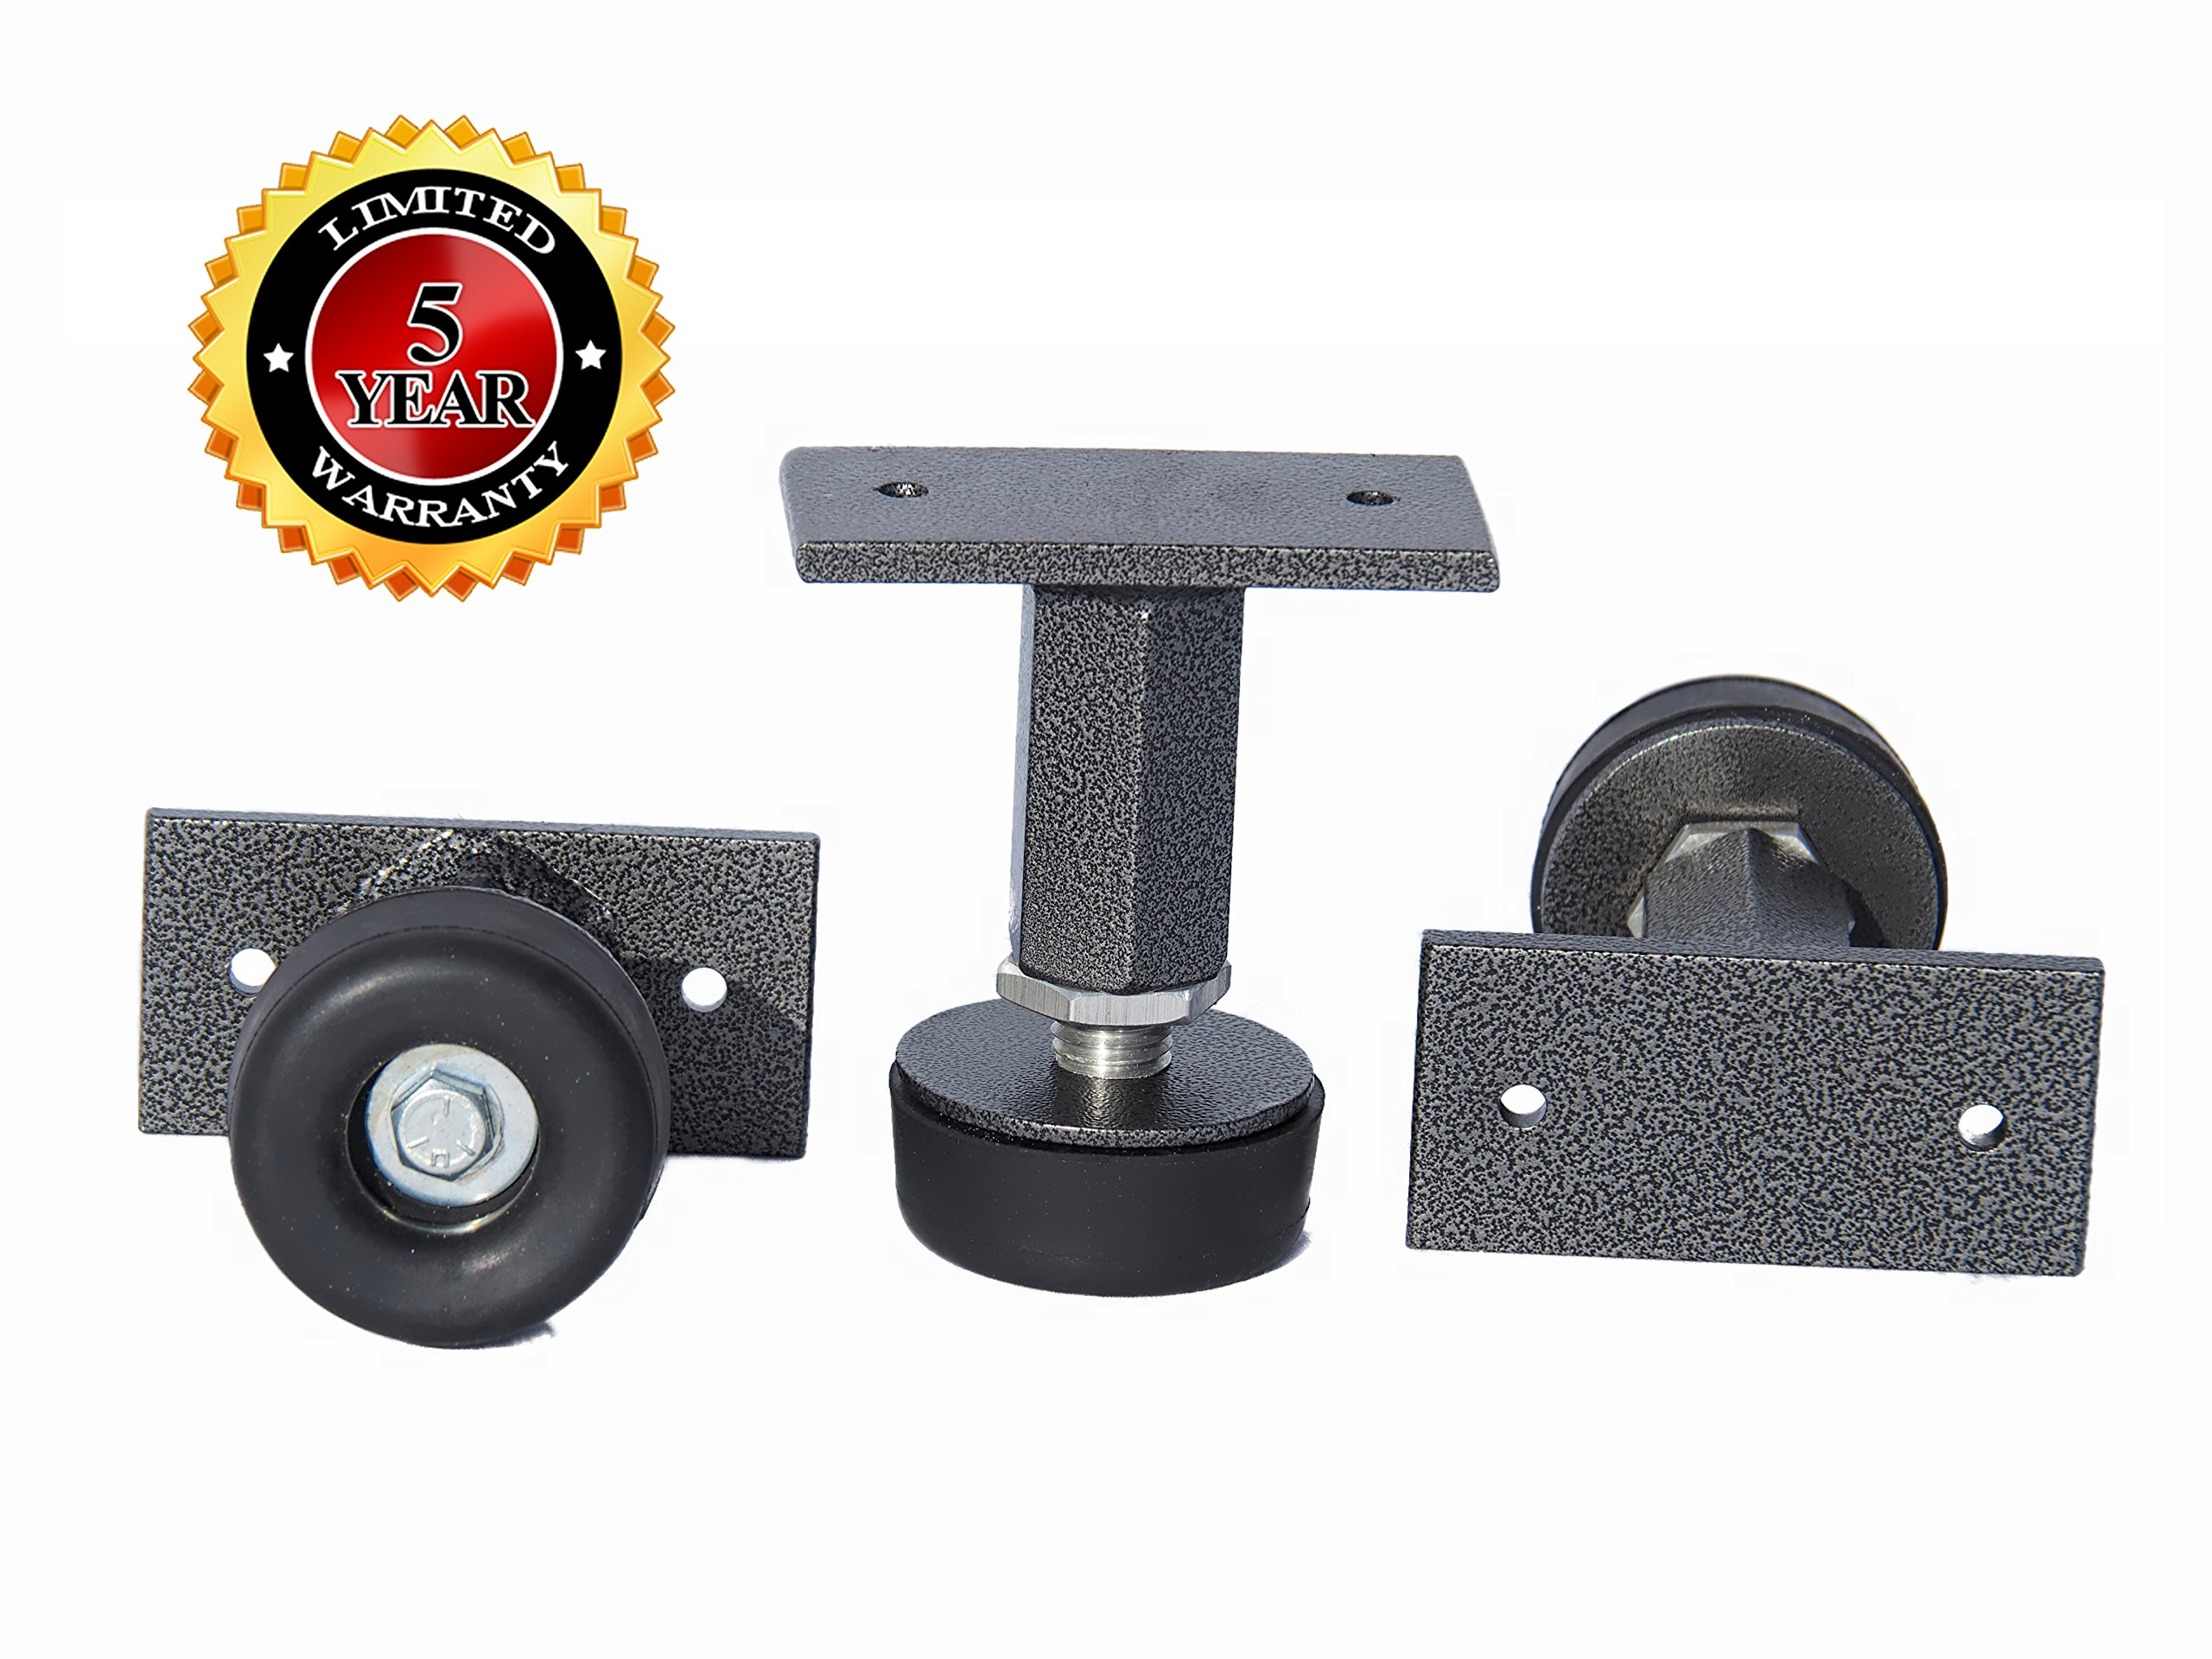 Trailer Door Adjusters- 3 Set MADE IN THE USA! by Plattinum Products